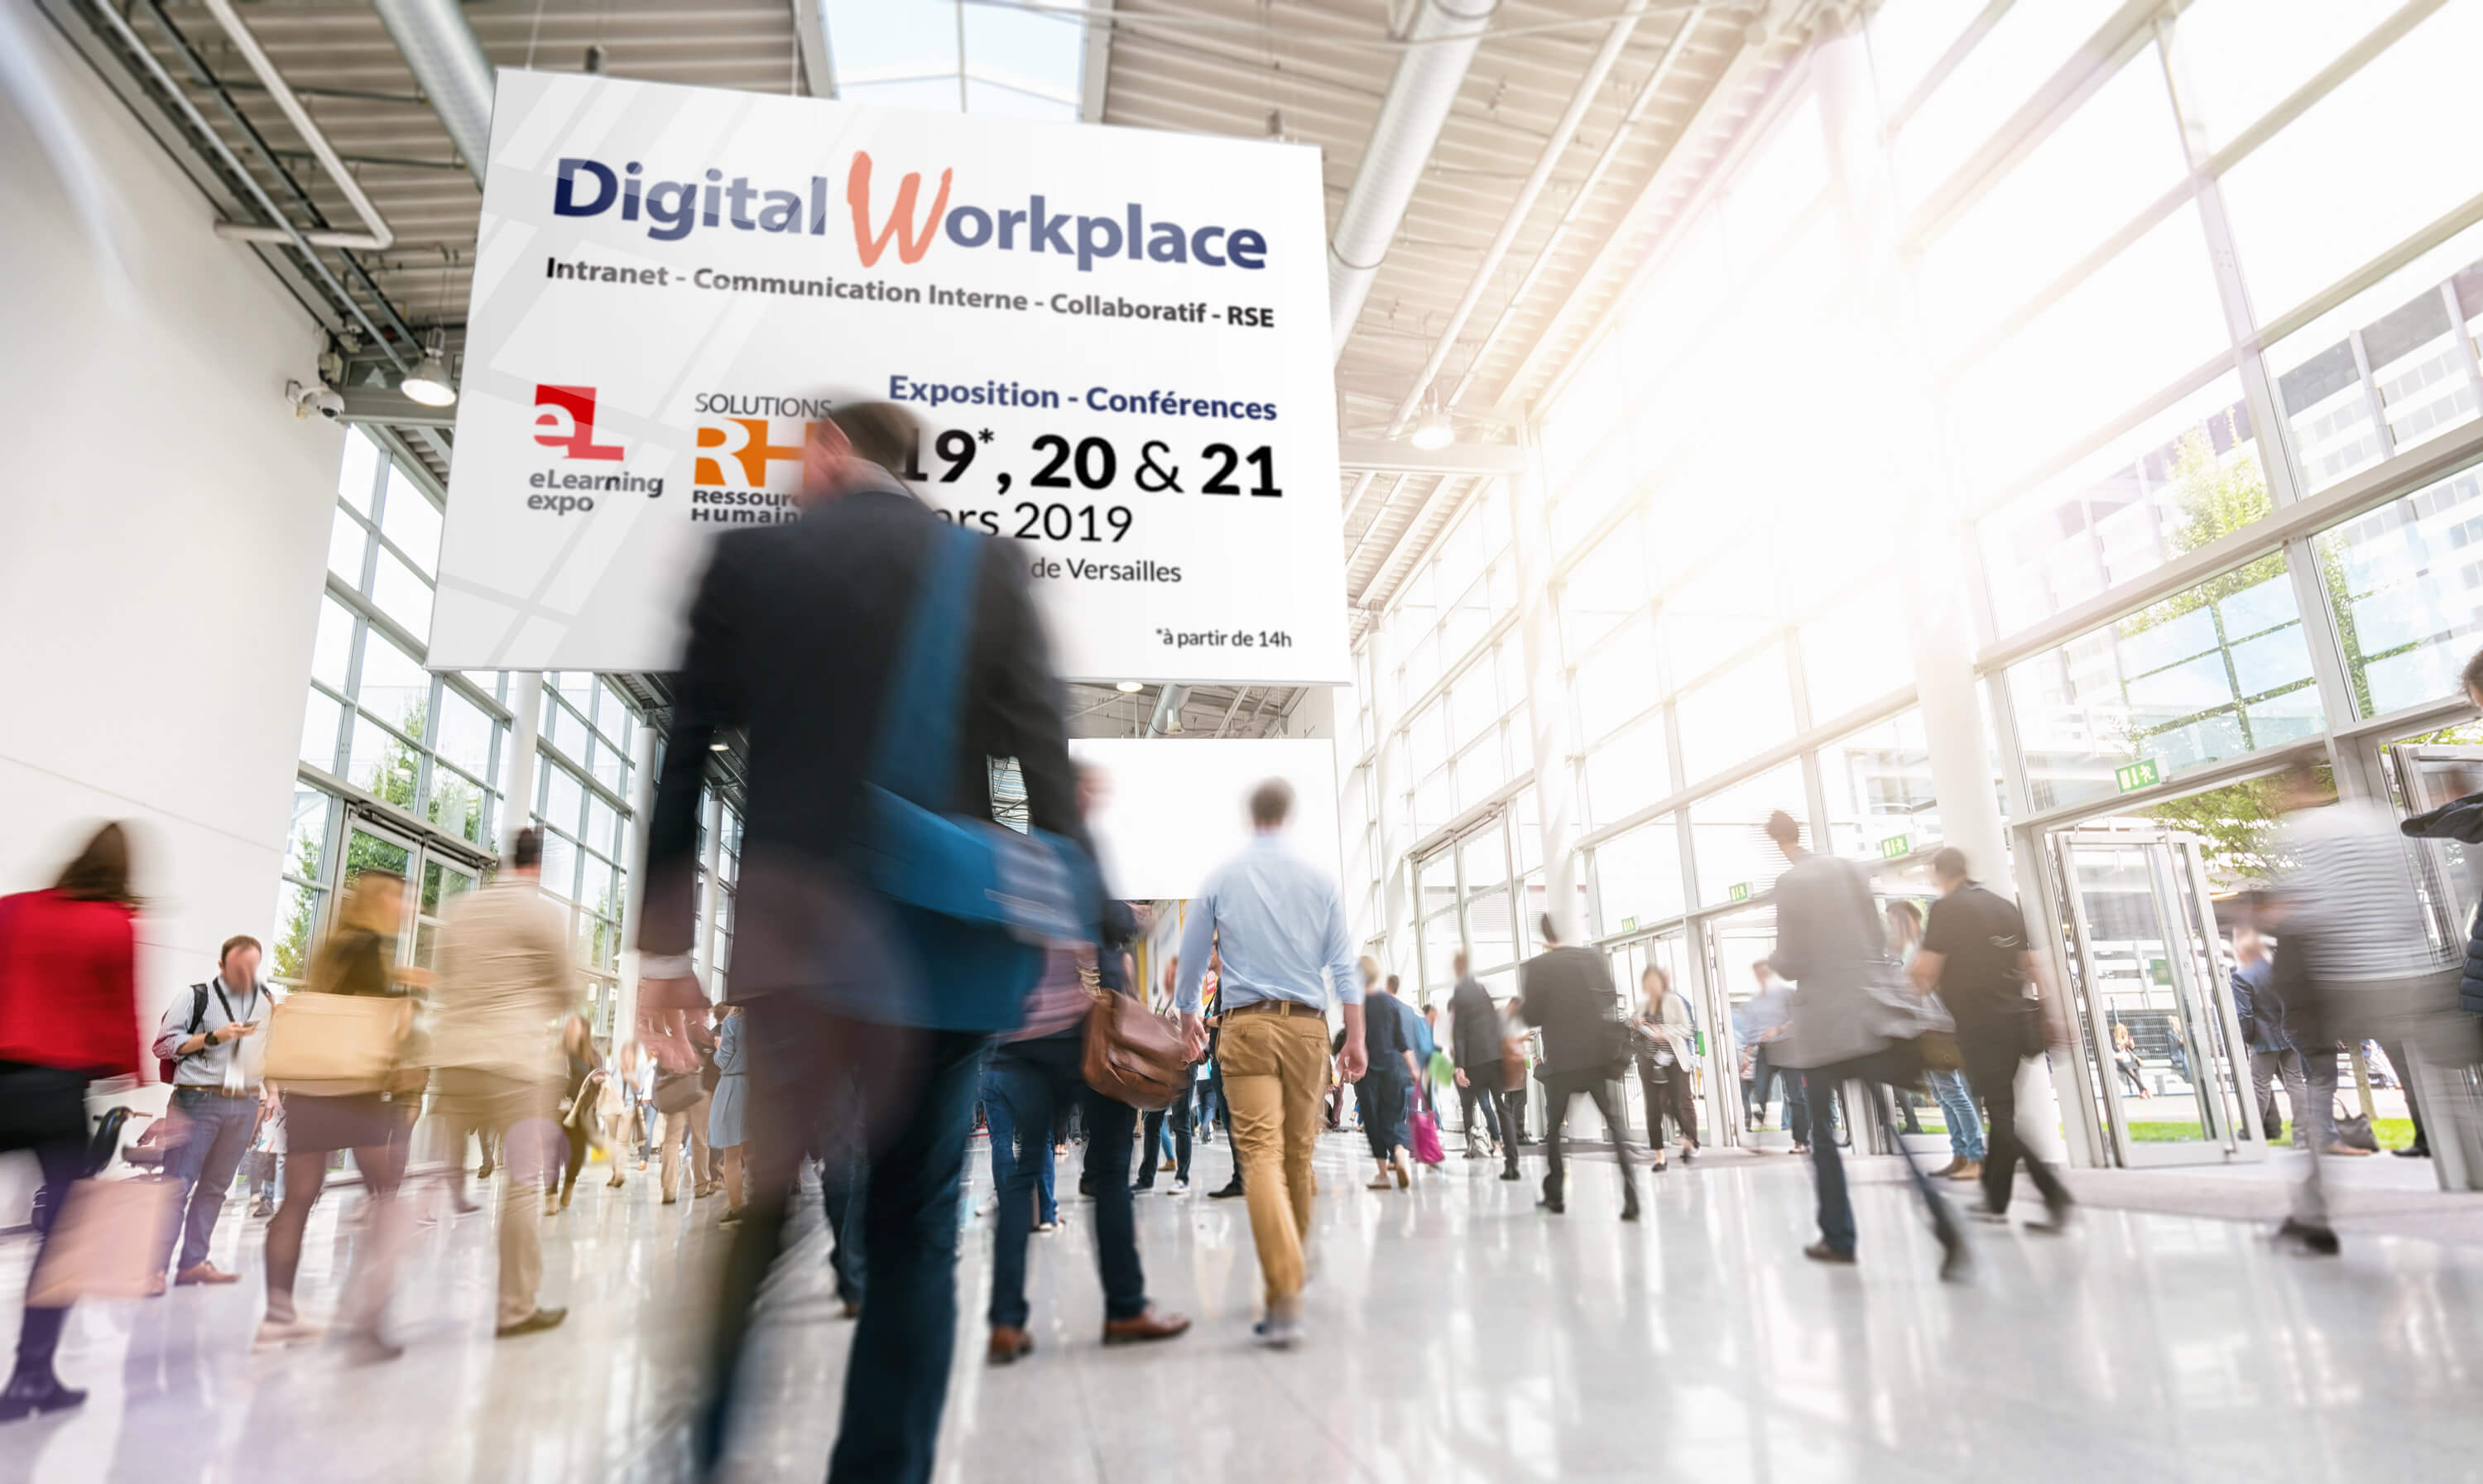 Digiwin au Salon de l'intranet 2019, Digital Workplace